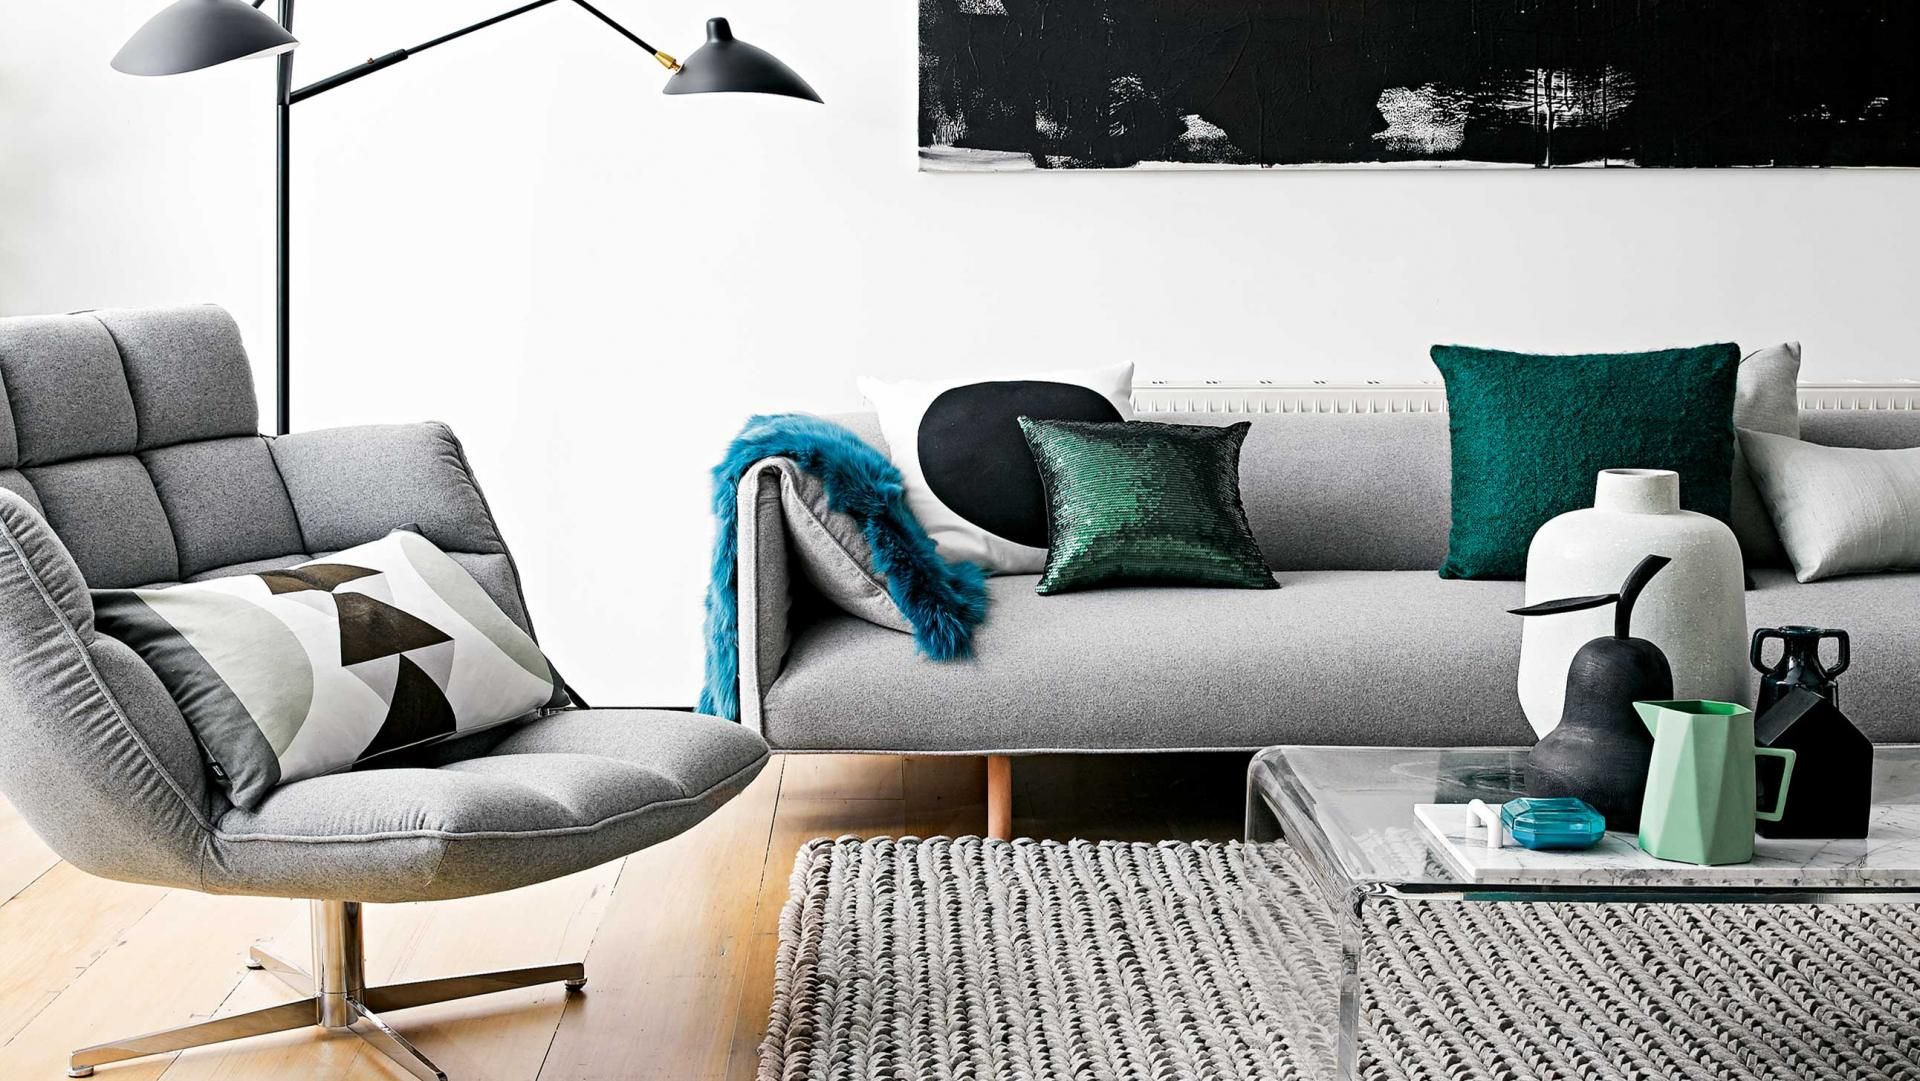 Modern living rooms ideas that will inspire a makeover photography